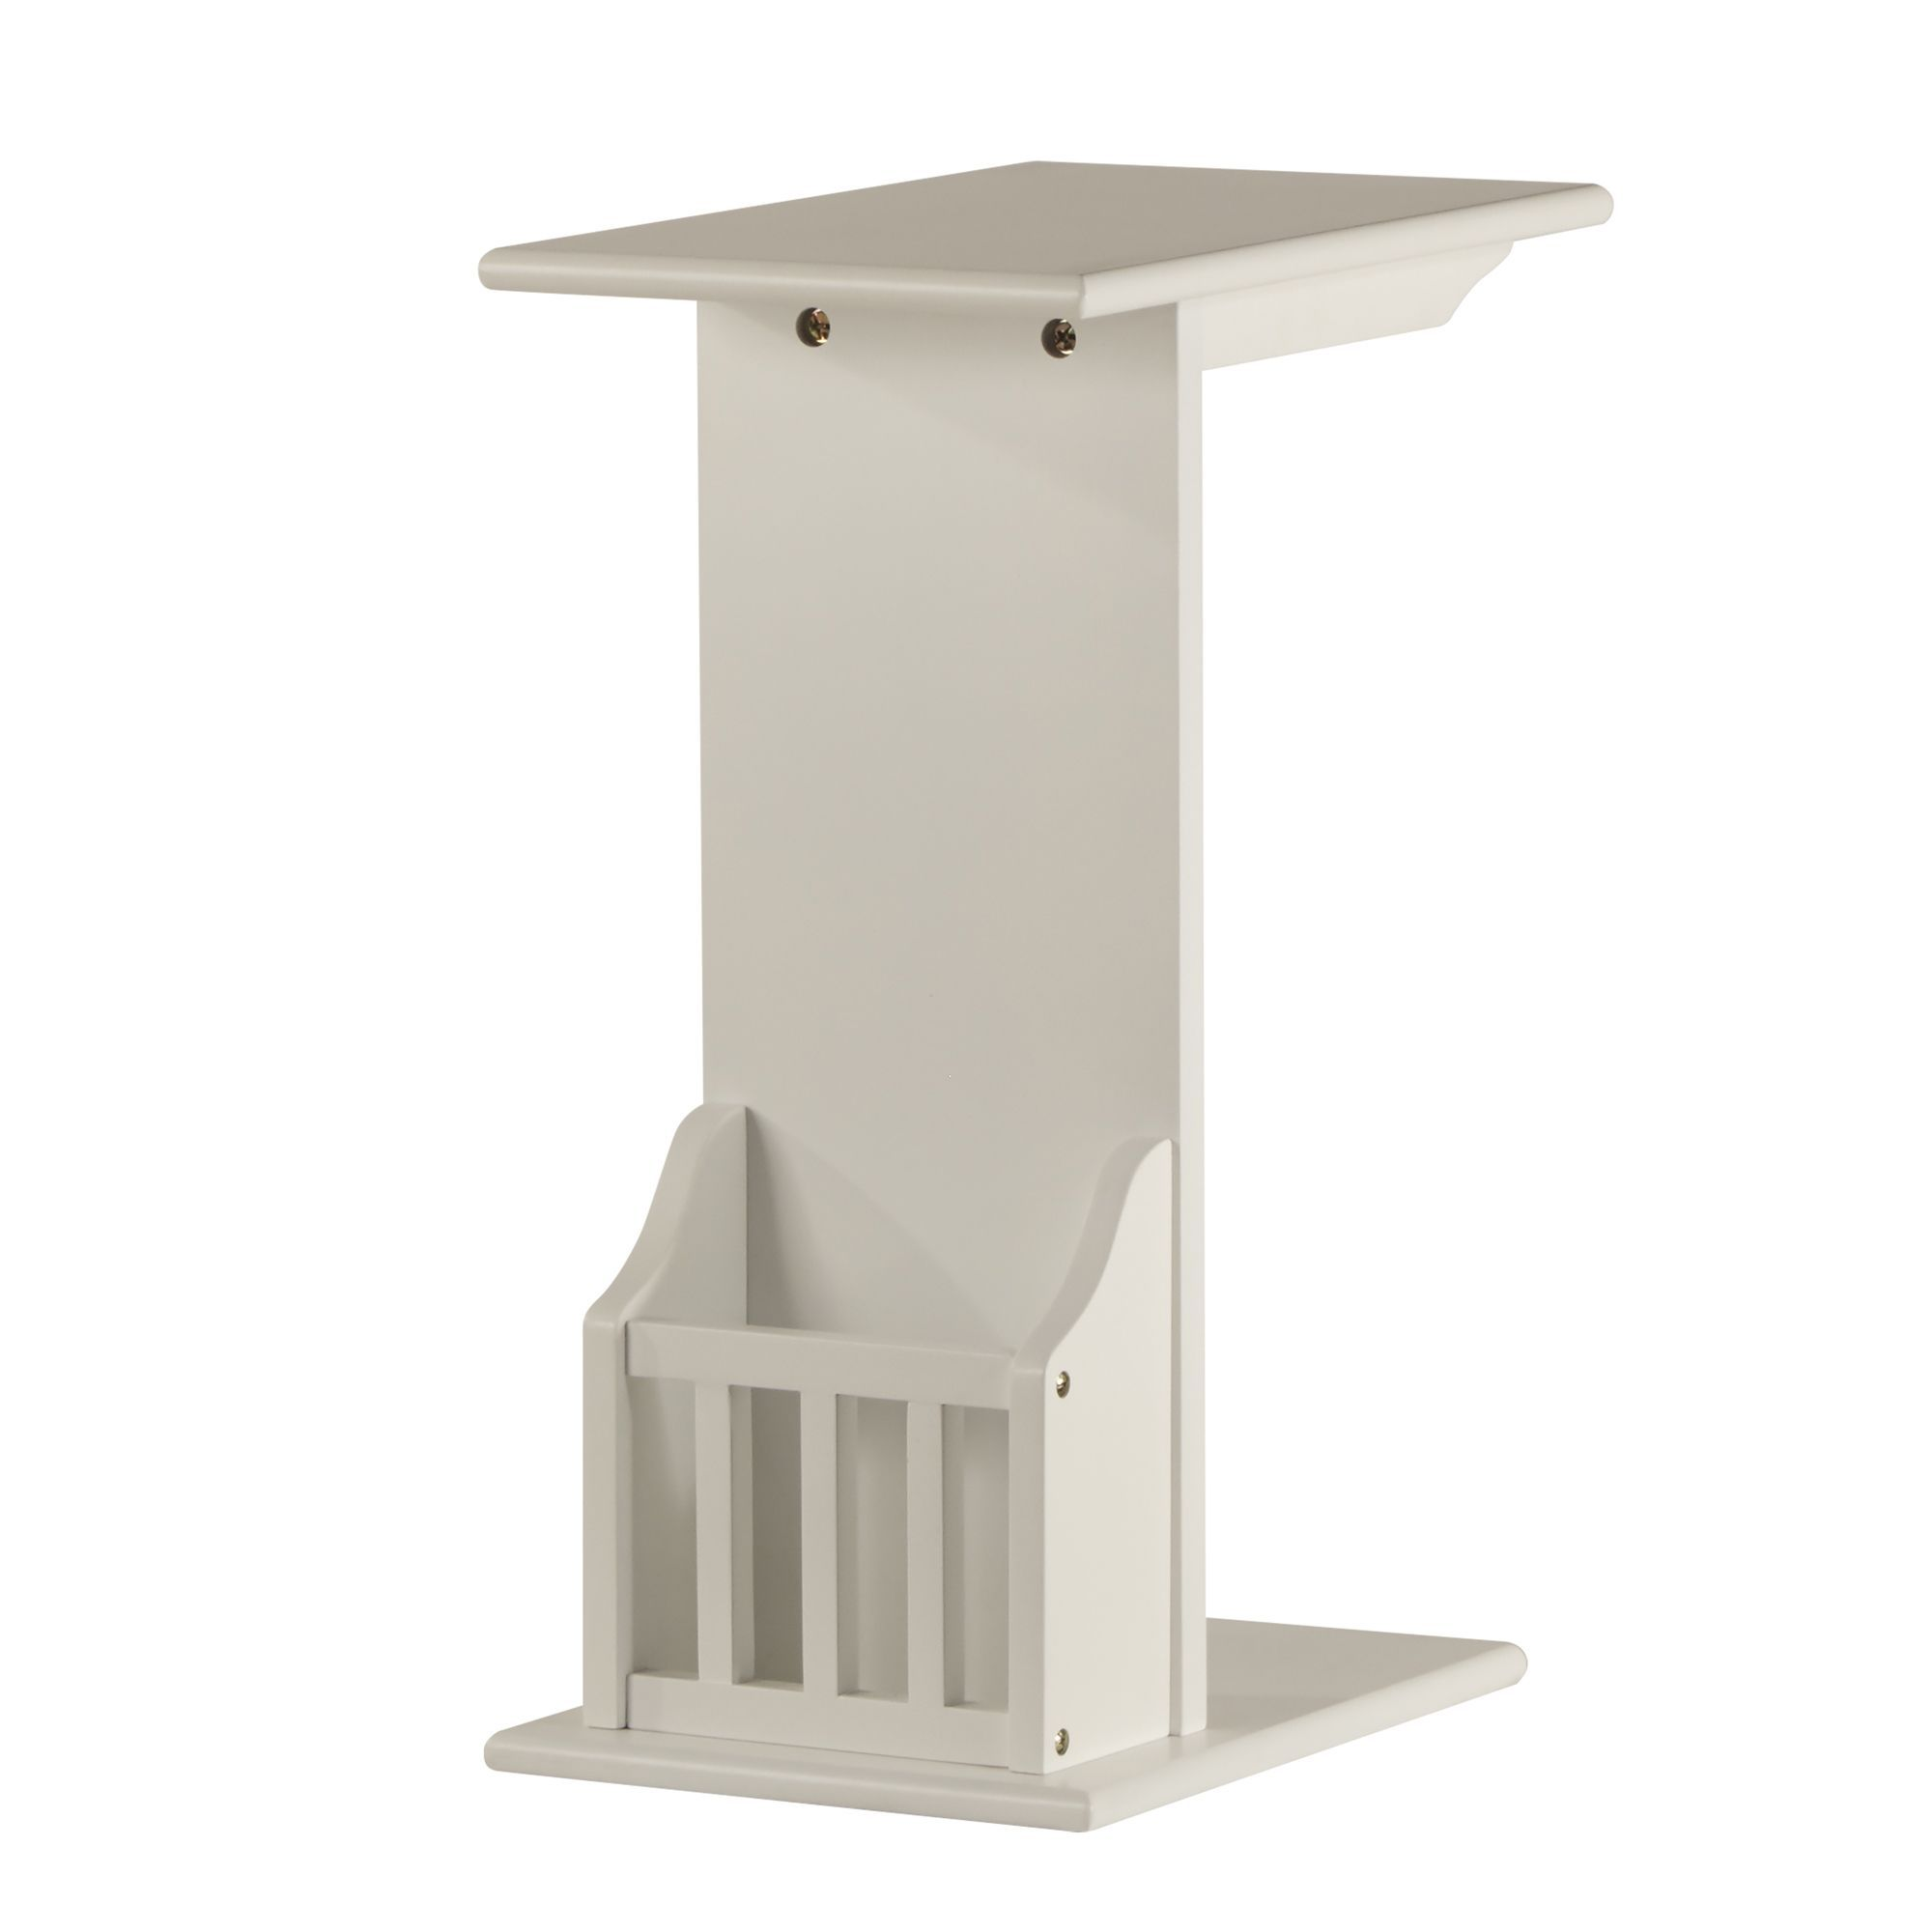 Woodbridge Accent Magazine Rack Chairside Table by Inspire Q (